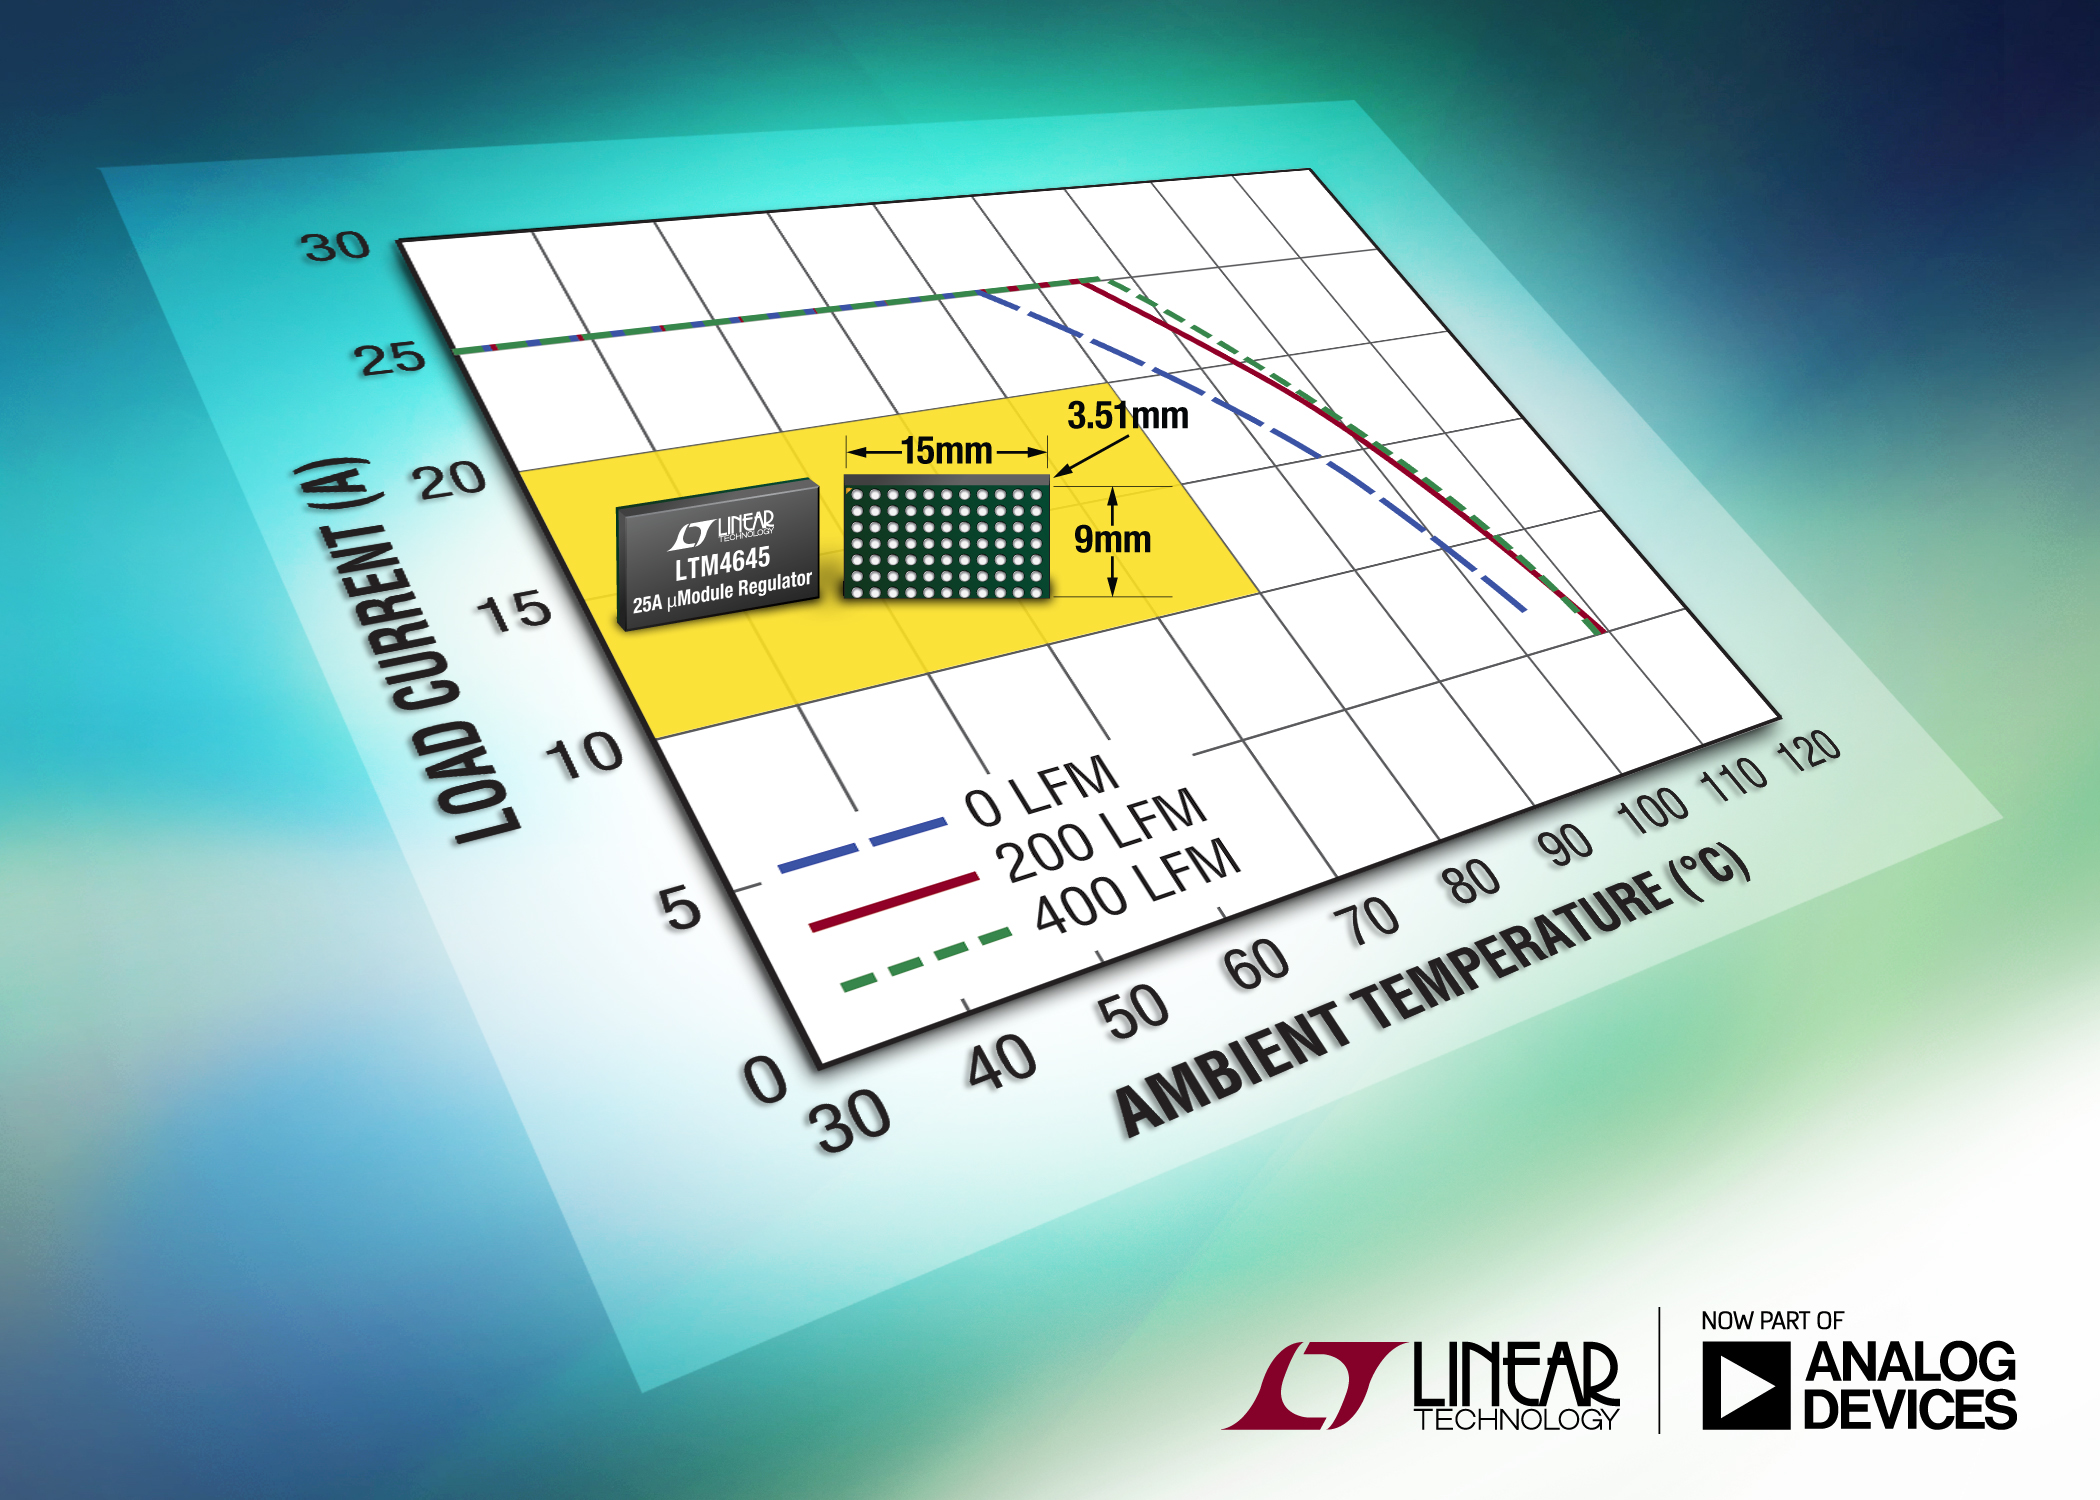 25A ÂμModule Regulator Supports N+1 Redundancy Ensuring Power Availability under Fault Conditions